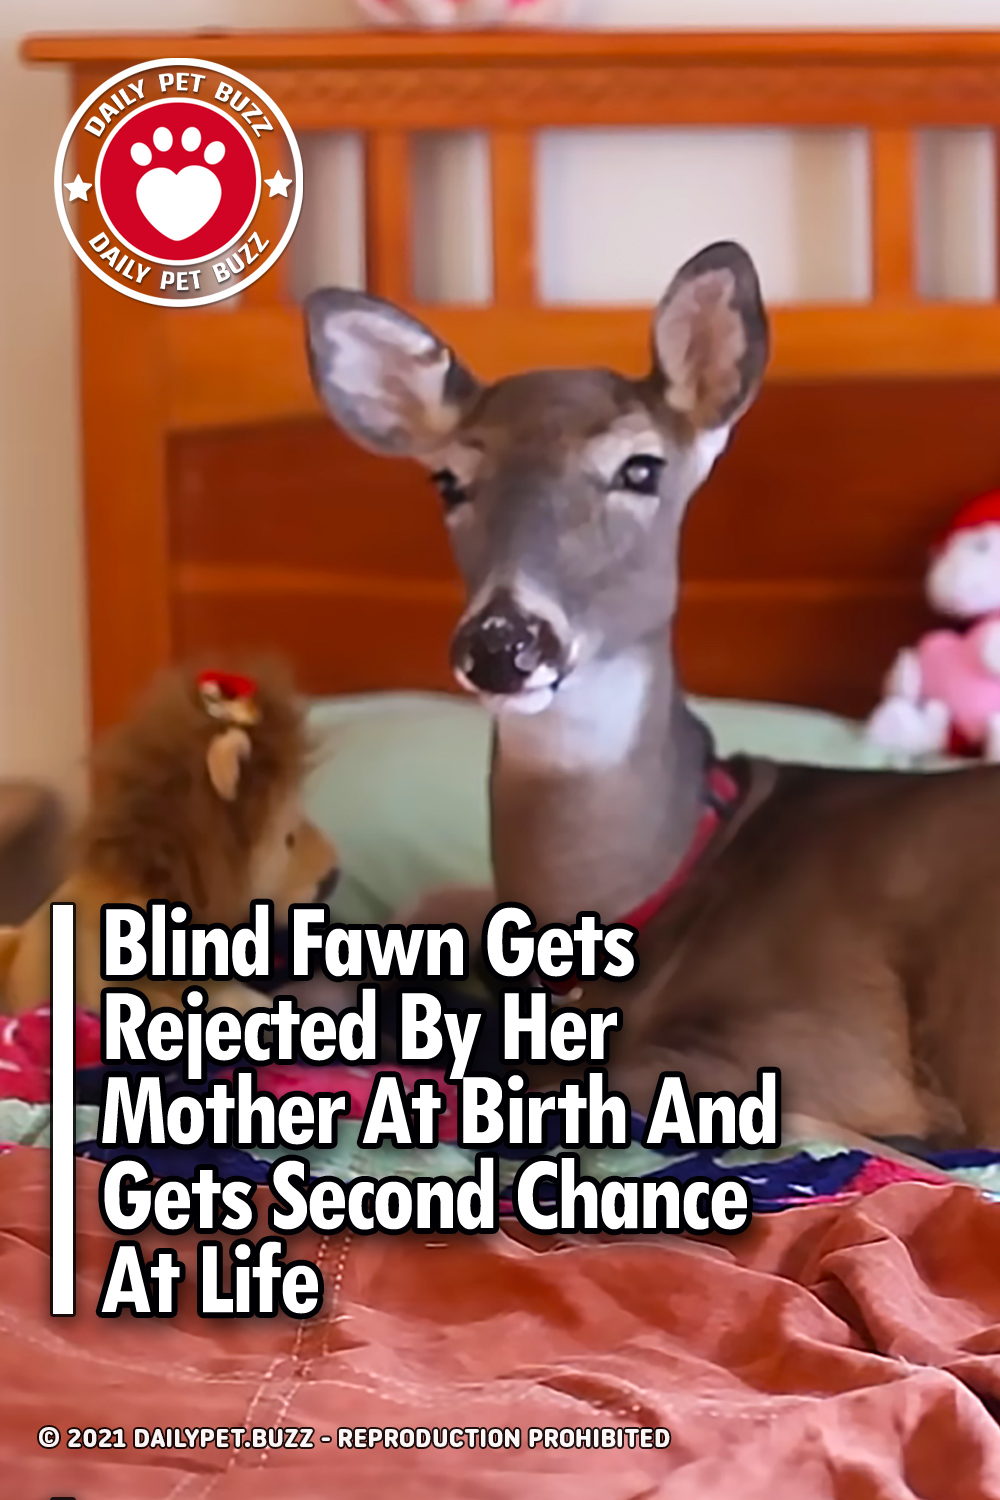 Blind Fawn Gets Rejected By Her Mother At Birth And Gets Second Chance At Life